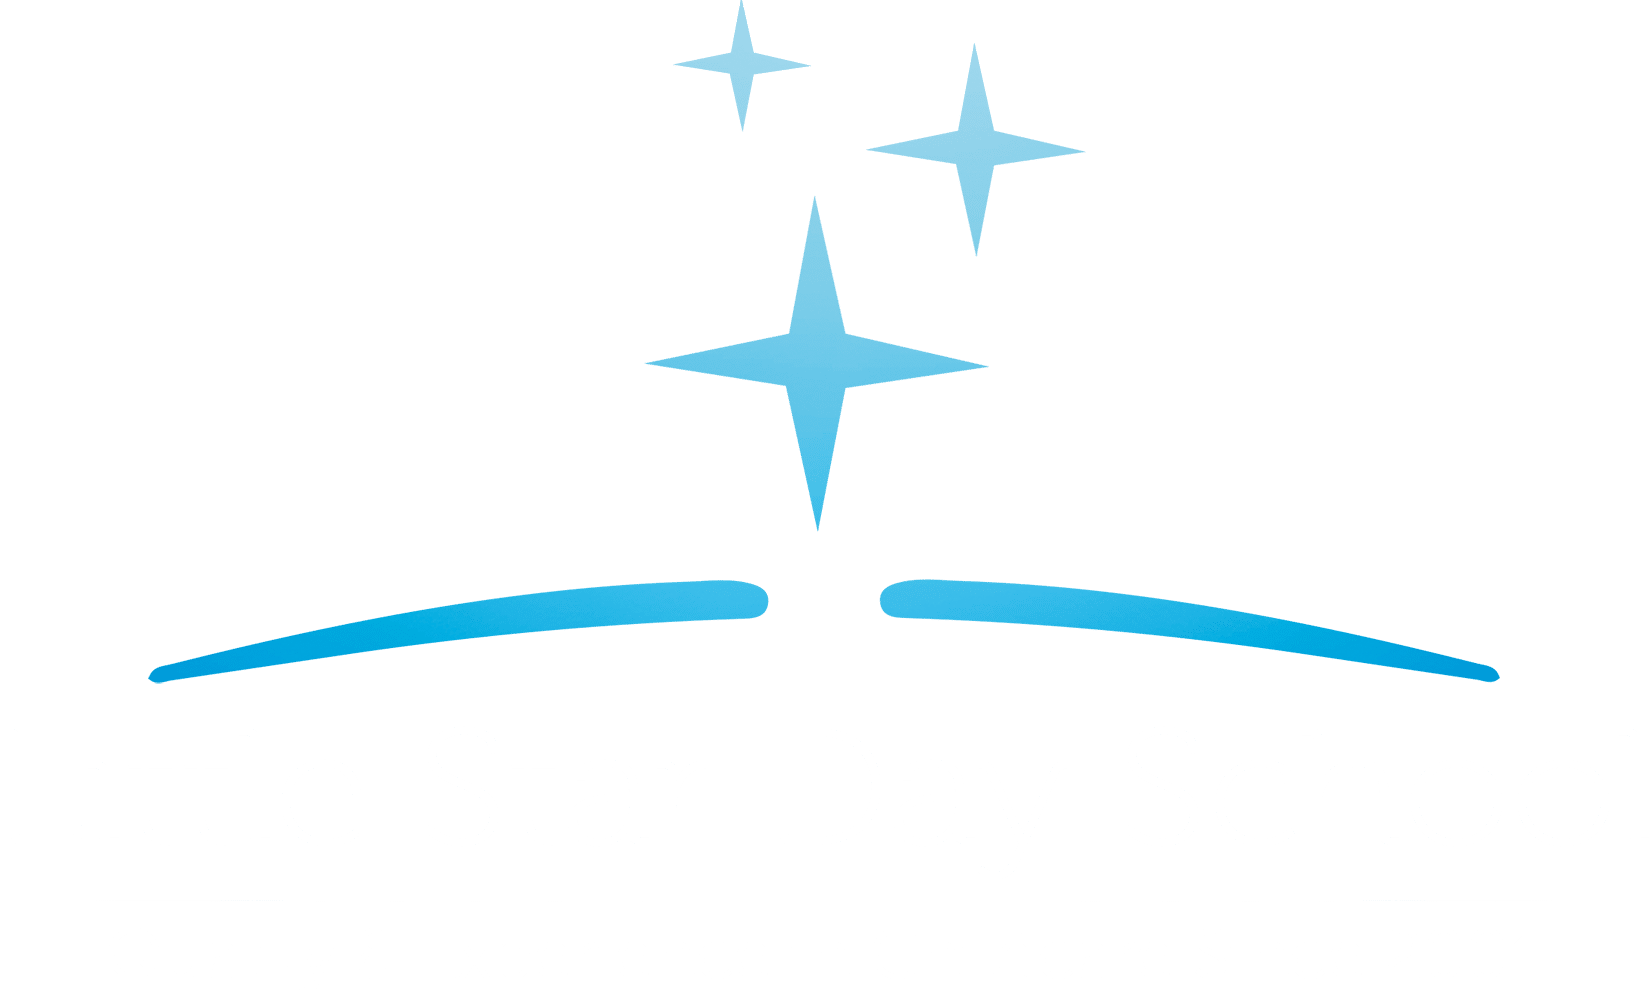 Little Star Day School